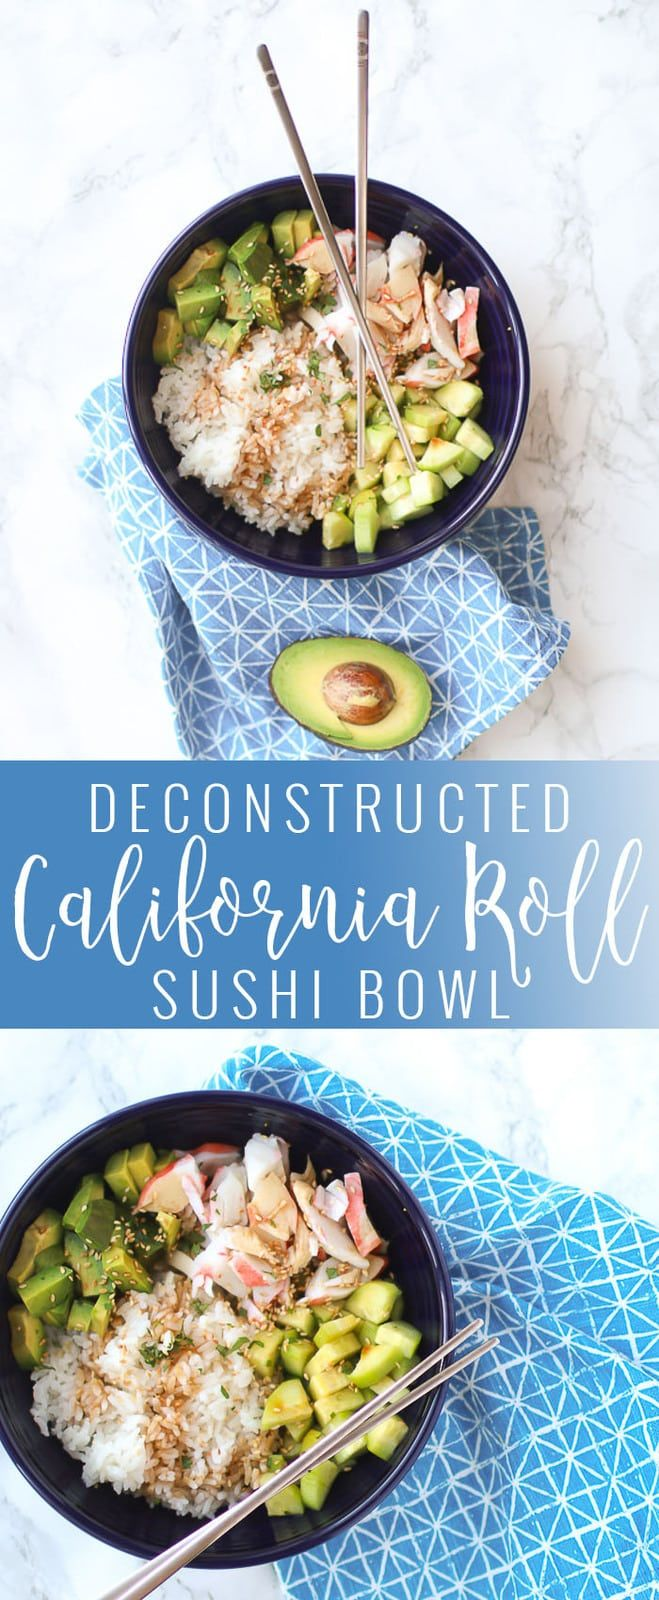 Deconstructed California Roll Bowl images